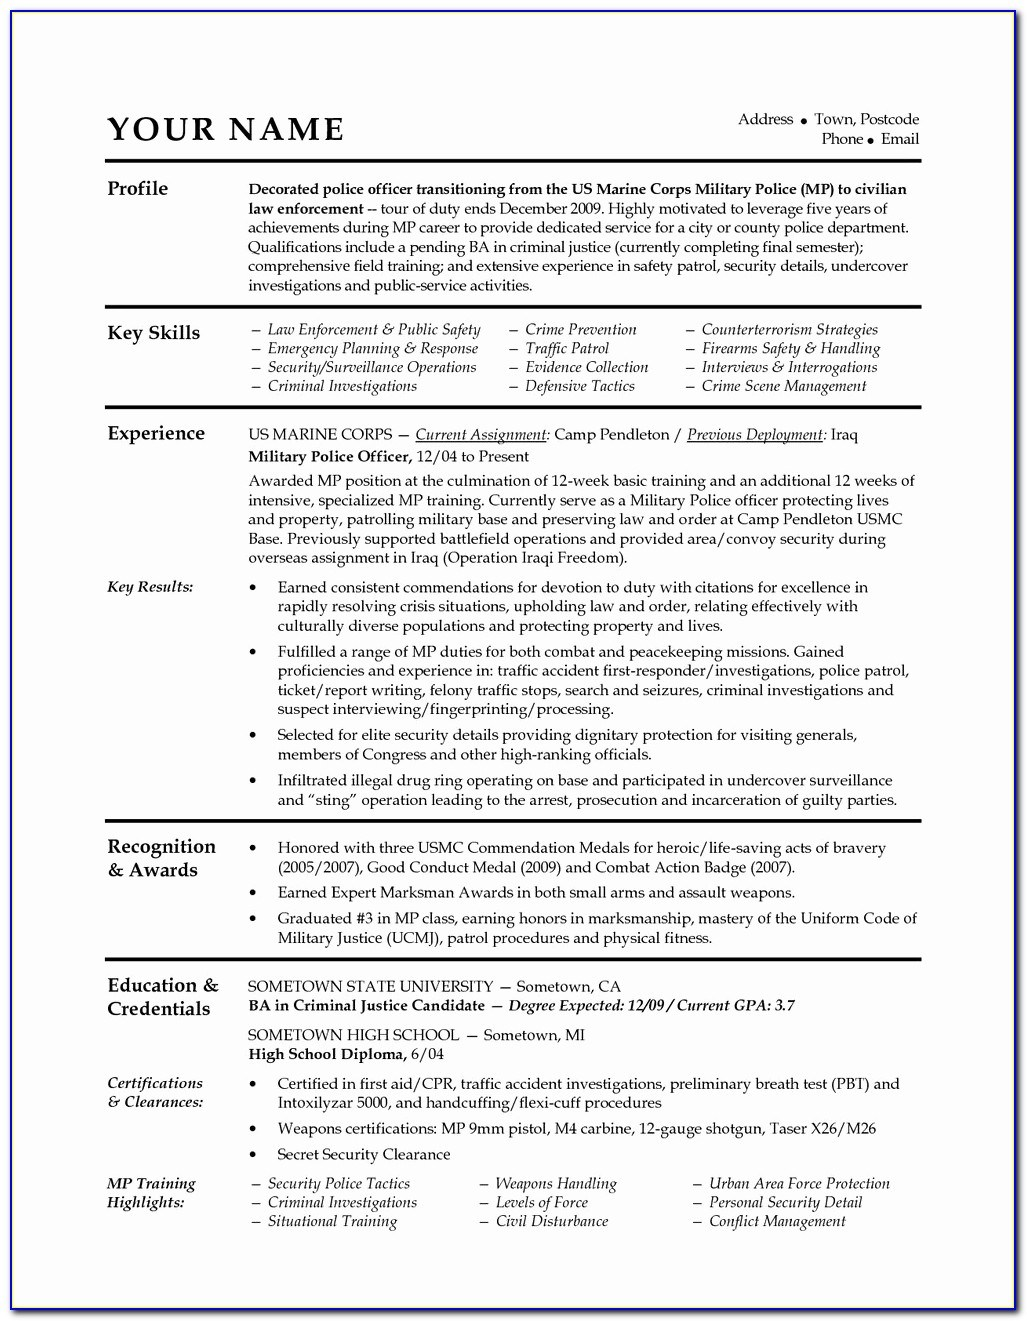 of military resume writing vincegray2014 police services companies sap mdg functional Resume Police Resume Writing Services